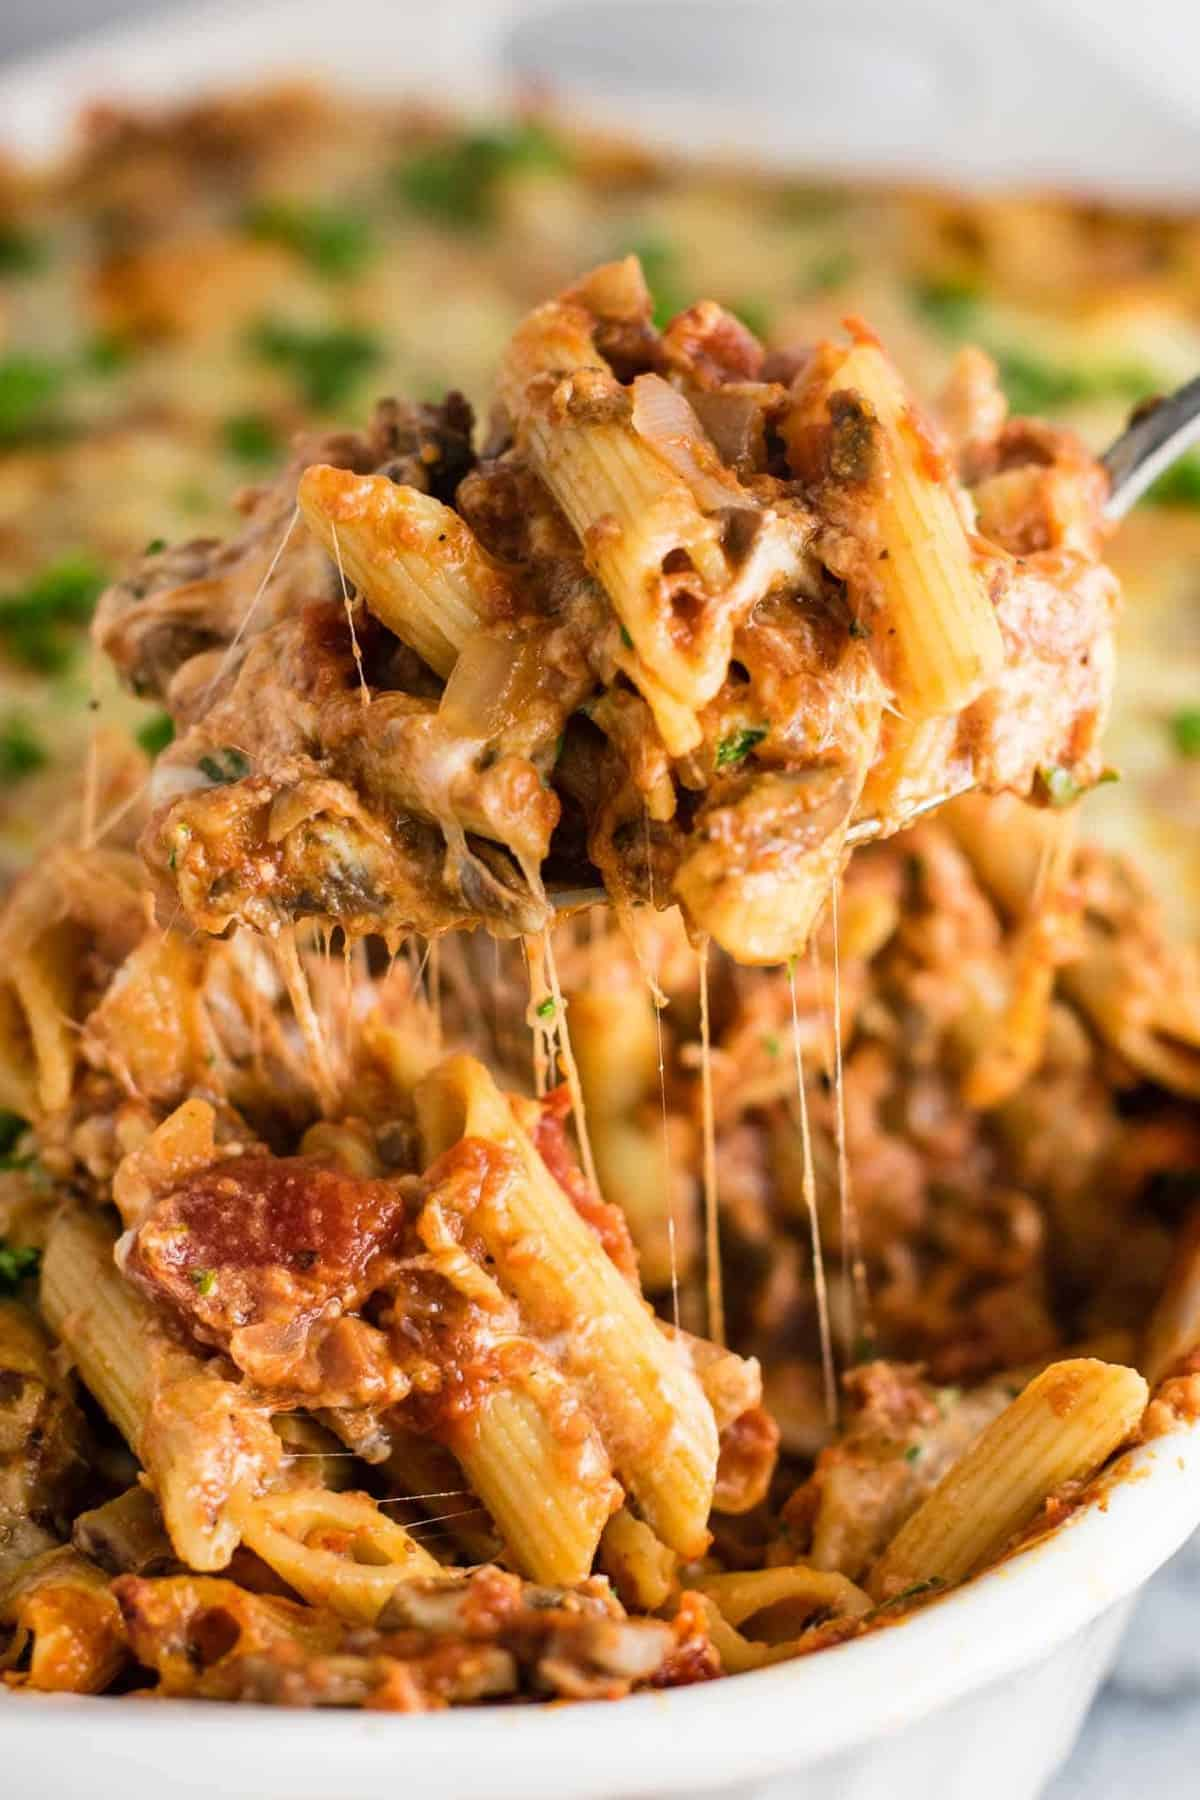 This Meatless Million Dollar Baked Ziti Recipe is an easy and impressive vegetarian dinner. Full of meaty mushrooms, fresh herbs, and four types of cheese! #meatless #milliondollarziti #bakedziti #vegetarian #dinner